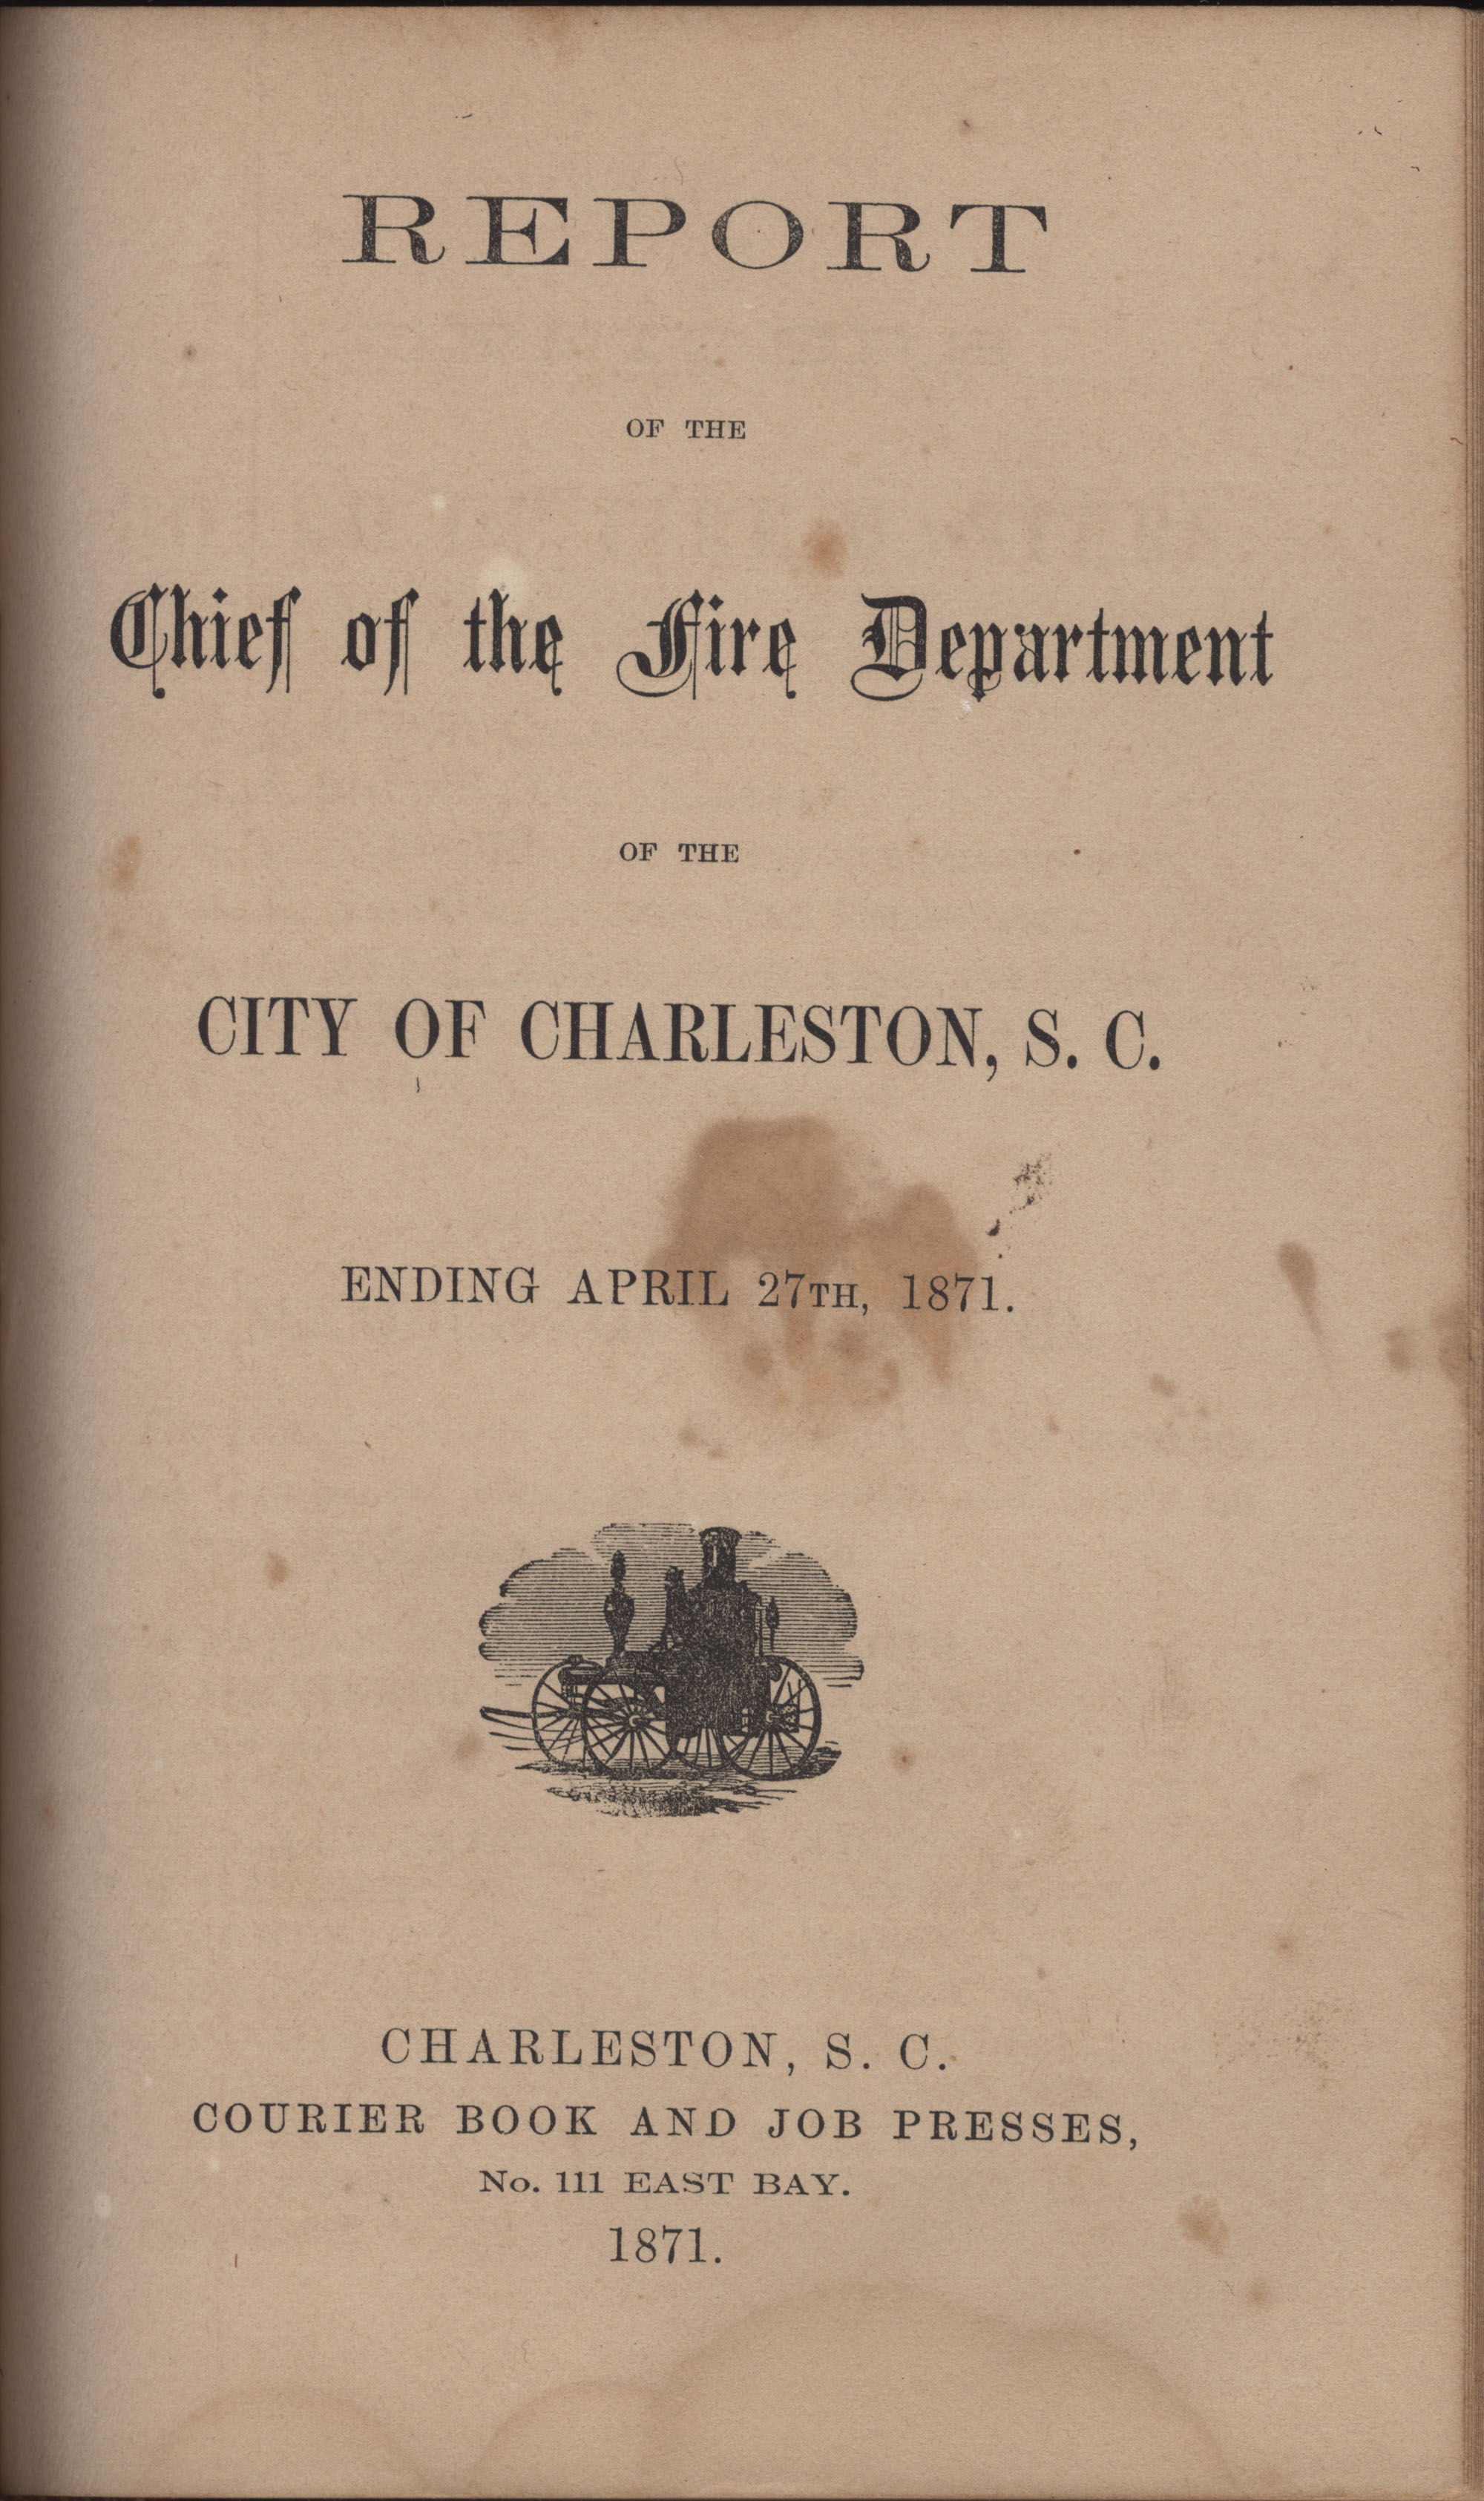 Annual Report of the Chief of the Fire Department of the City of Charleston, page 350